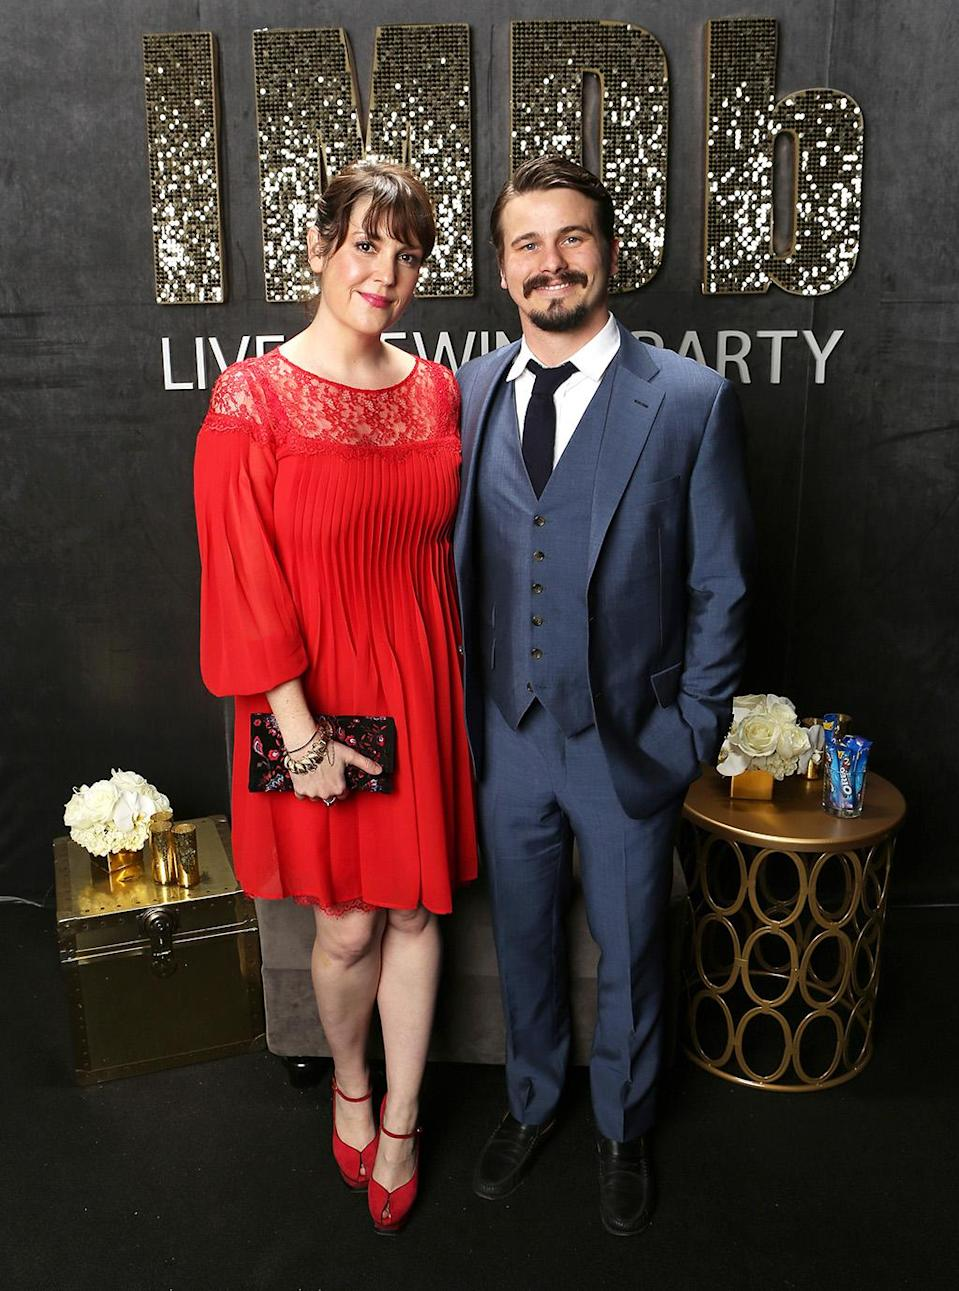 <p>Melanie Lynskey and Jason Ritter attend IMDb LIVE Viewing Party, presented by OREO chocolate candy bar on February 26, 2017 in Hollywood, California. (Photo by Rich Polk/Getty Images for IMDb.com) </p>